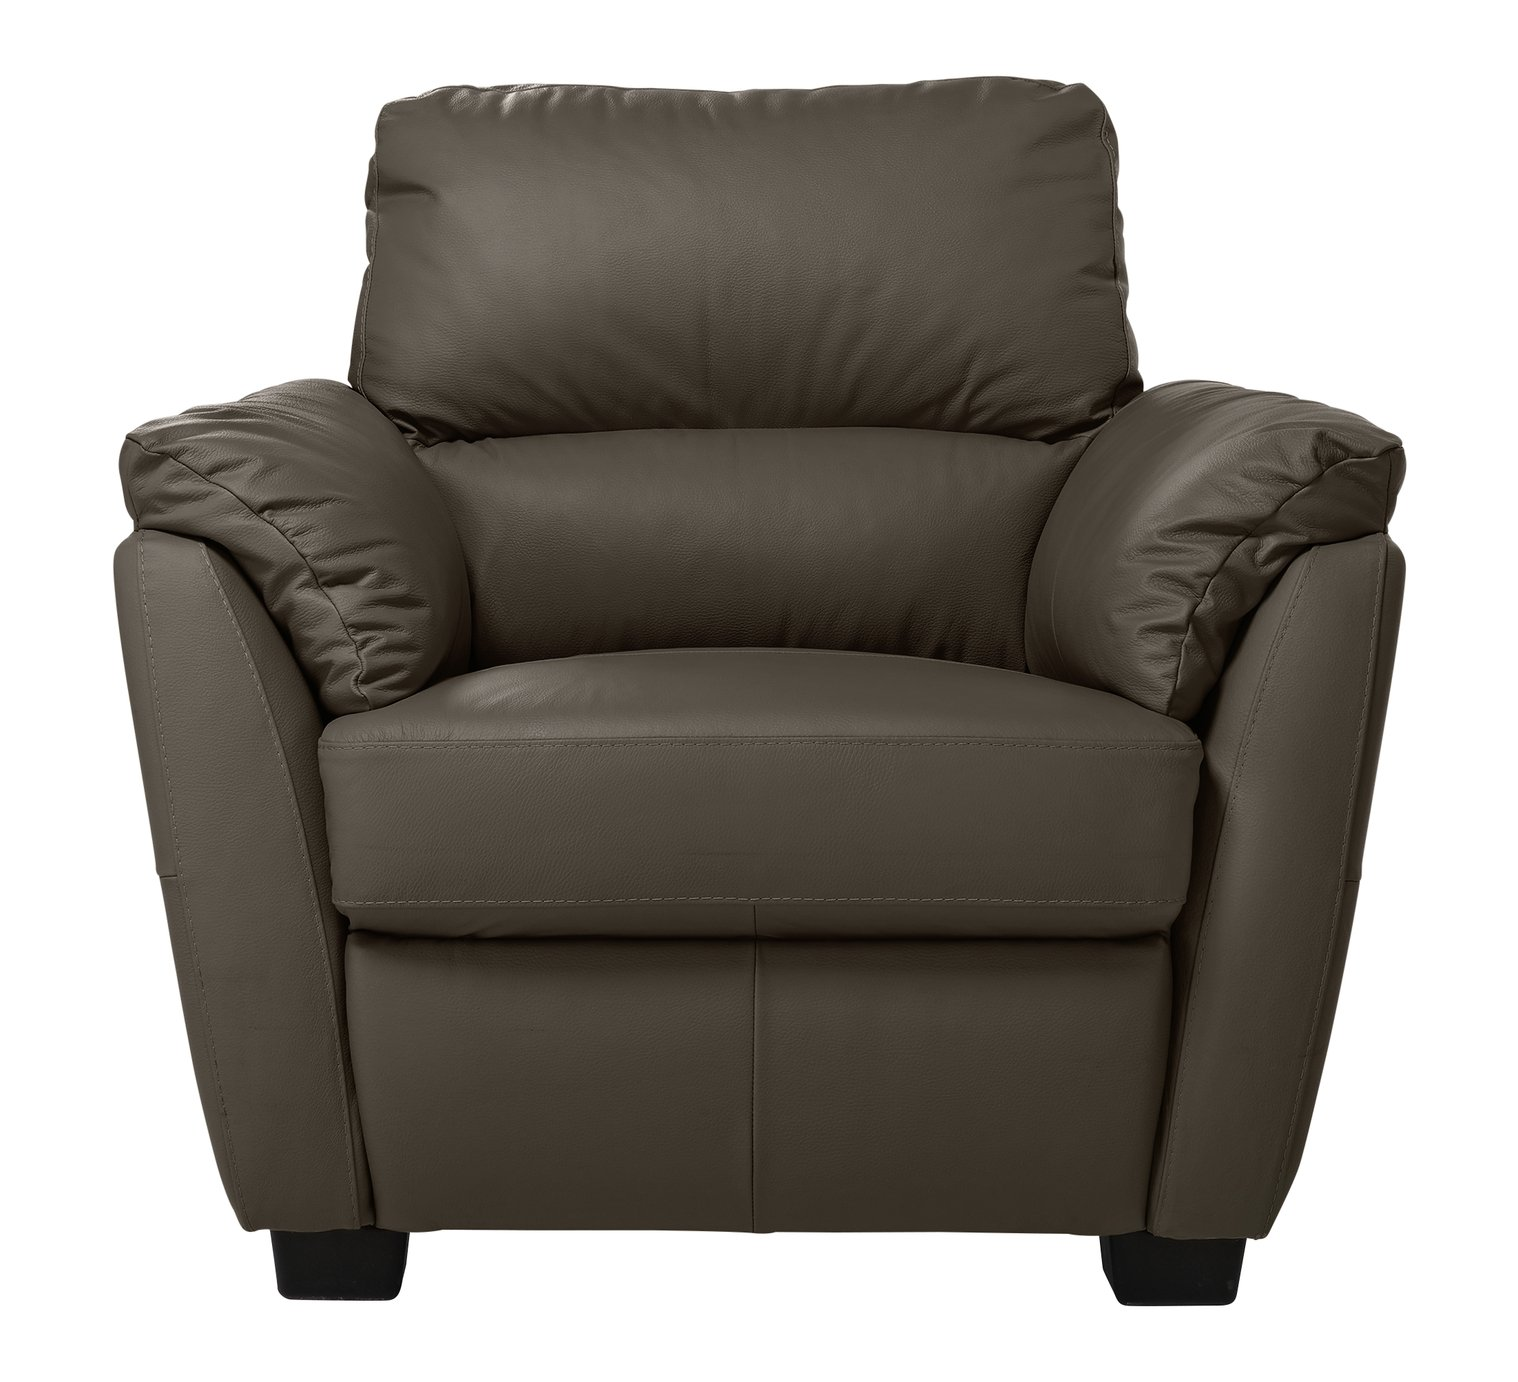 Argos Home Trieste Leather Armchair - Dark Brown